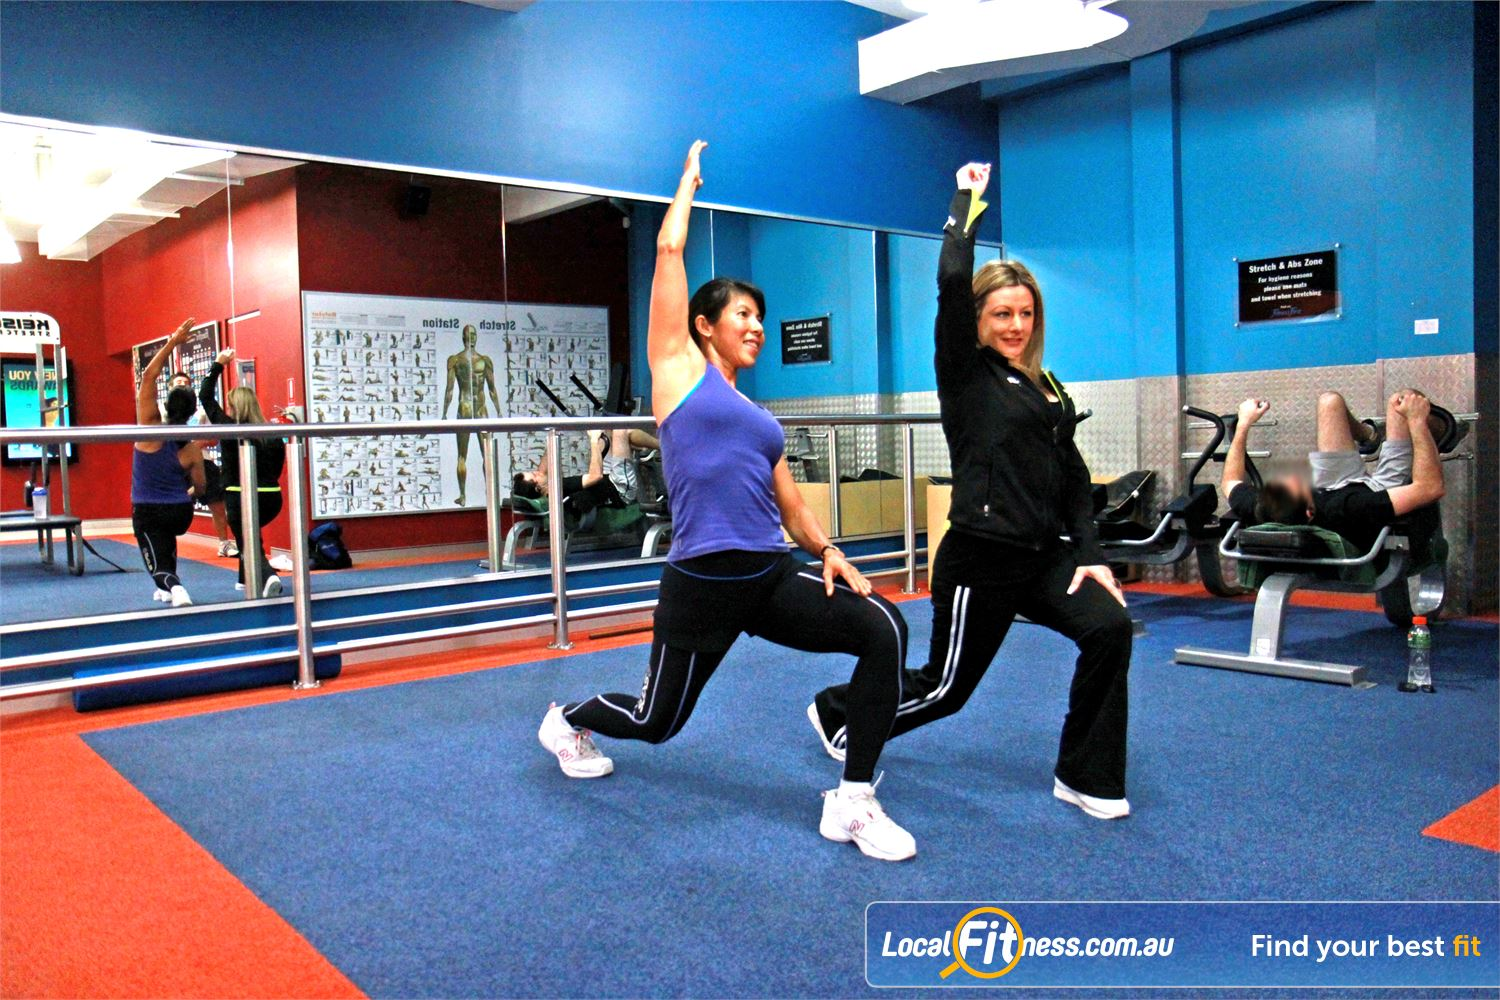 Goodlife Health Clubs Innaloo Our dedicated abs and stretch area in our Innaloo gym.